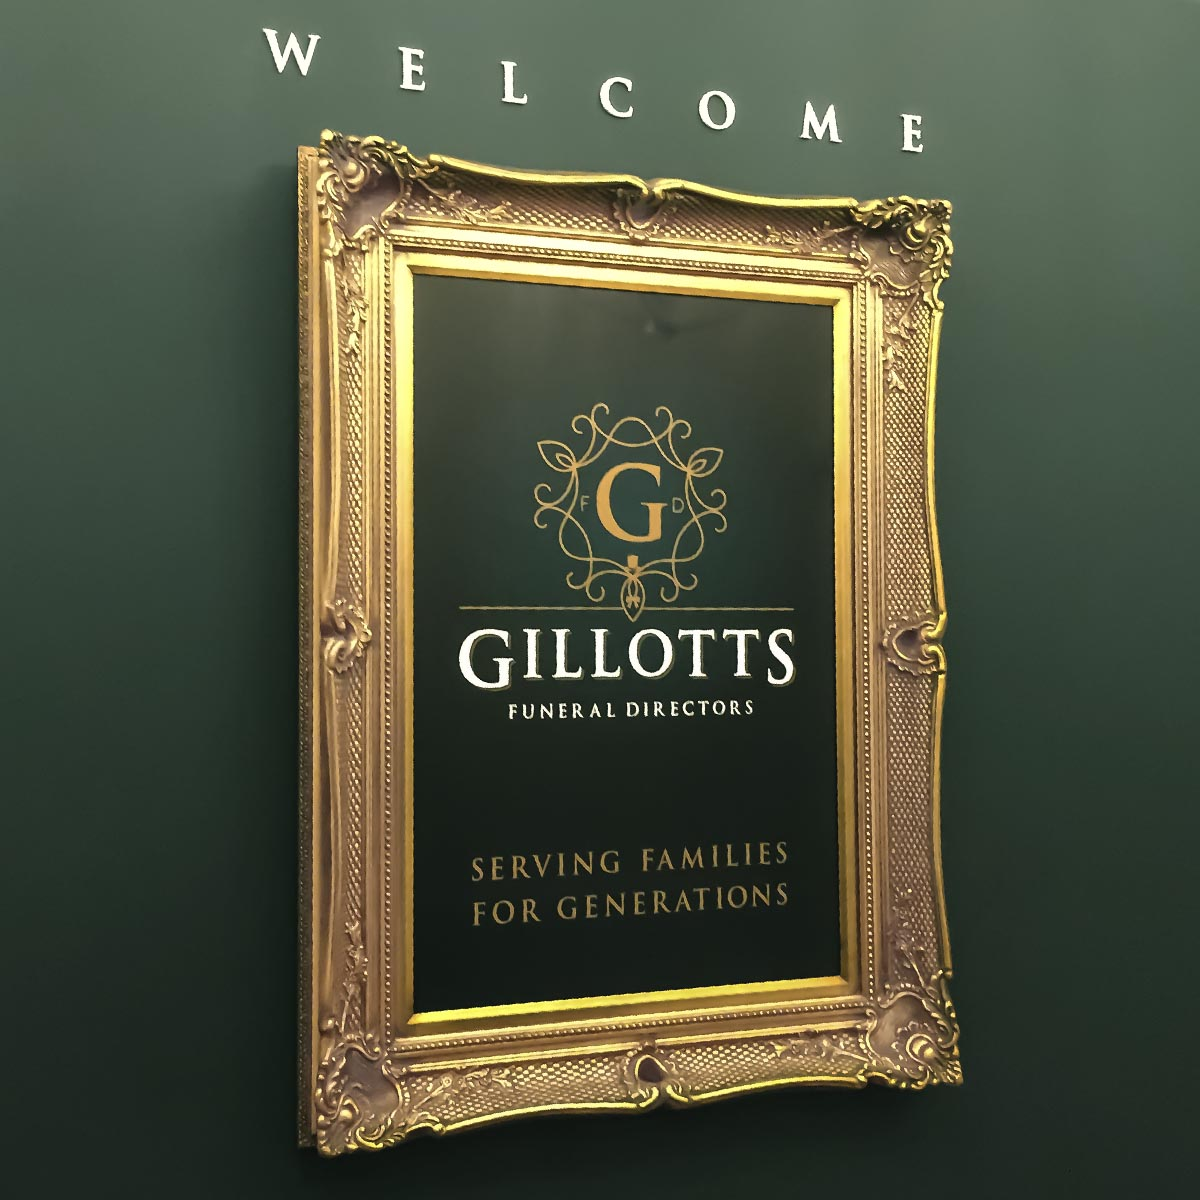 Gillotts Funeral Directors branch interior decoration